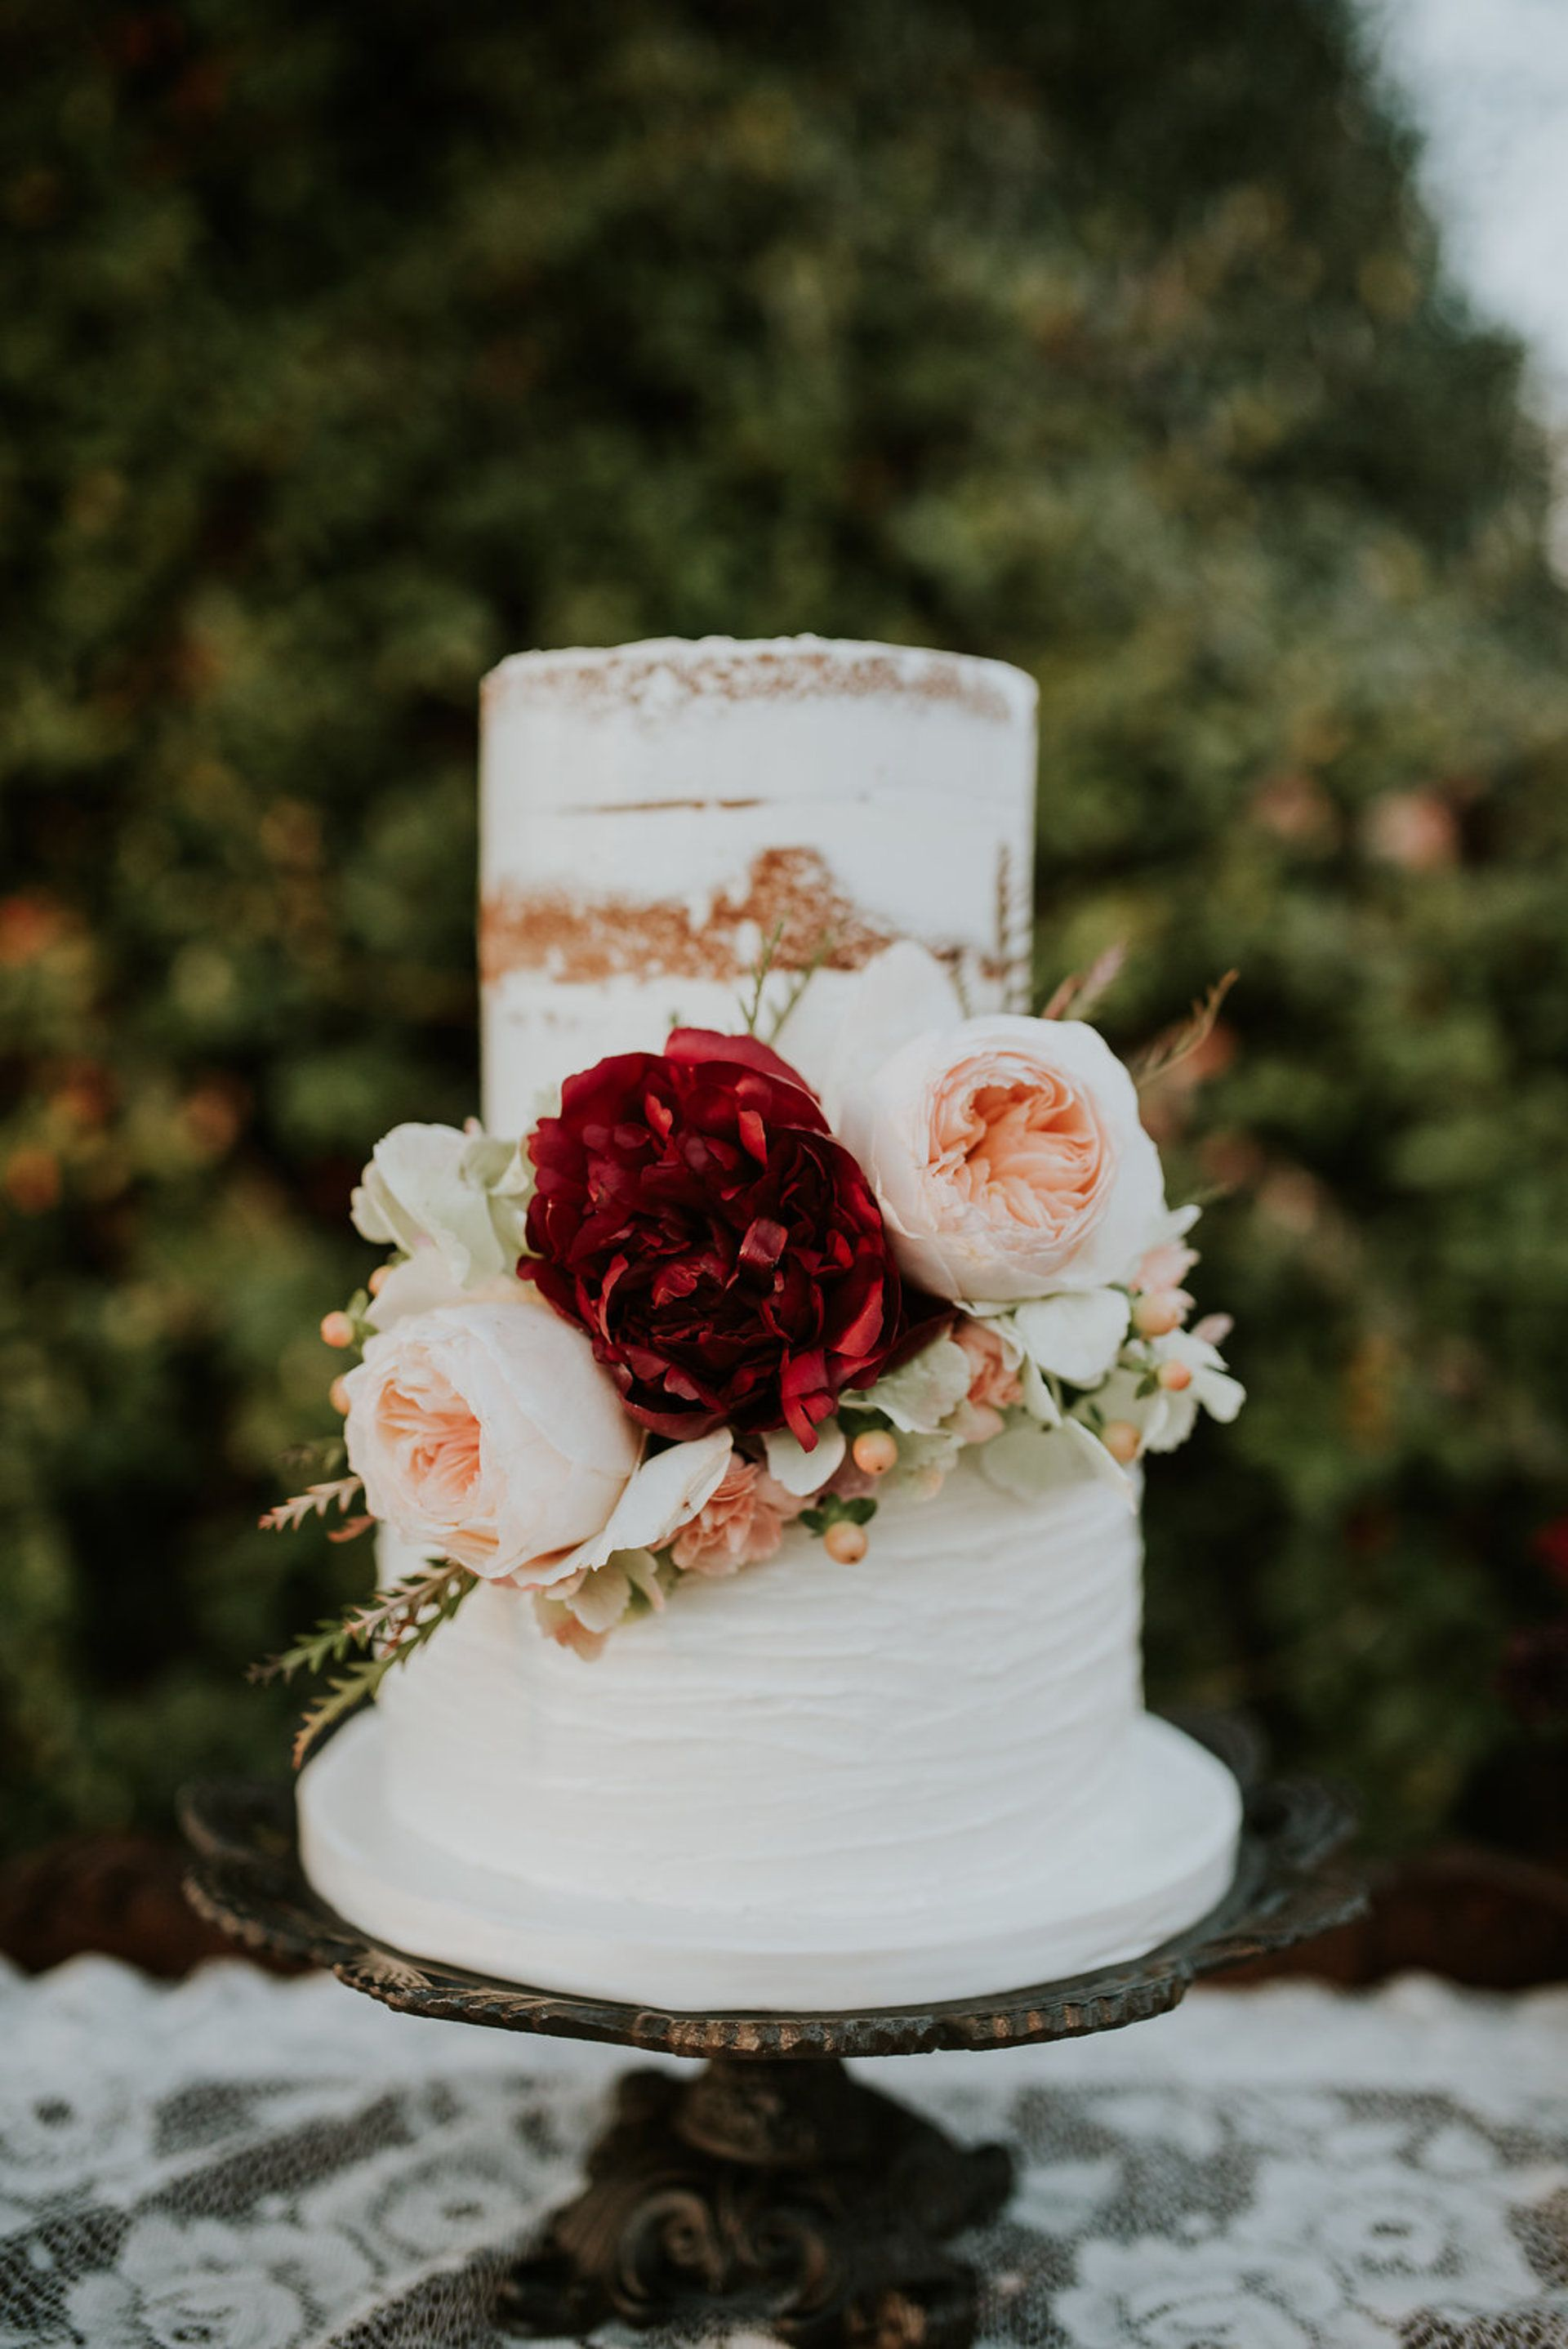 romantic two tier wedding cake peach and dark red florals naked tier thick white frosting moriah elisabeth